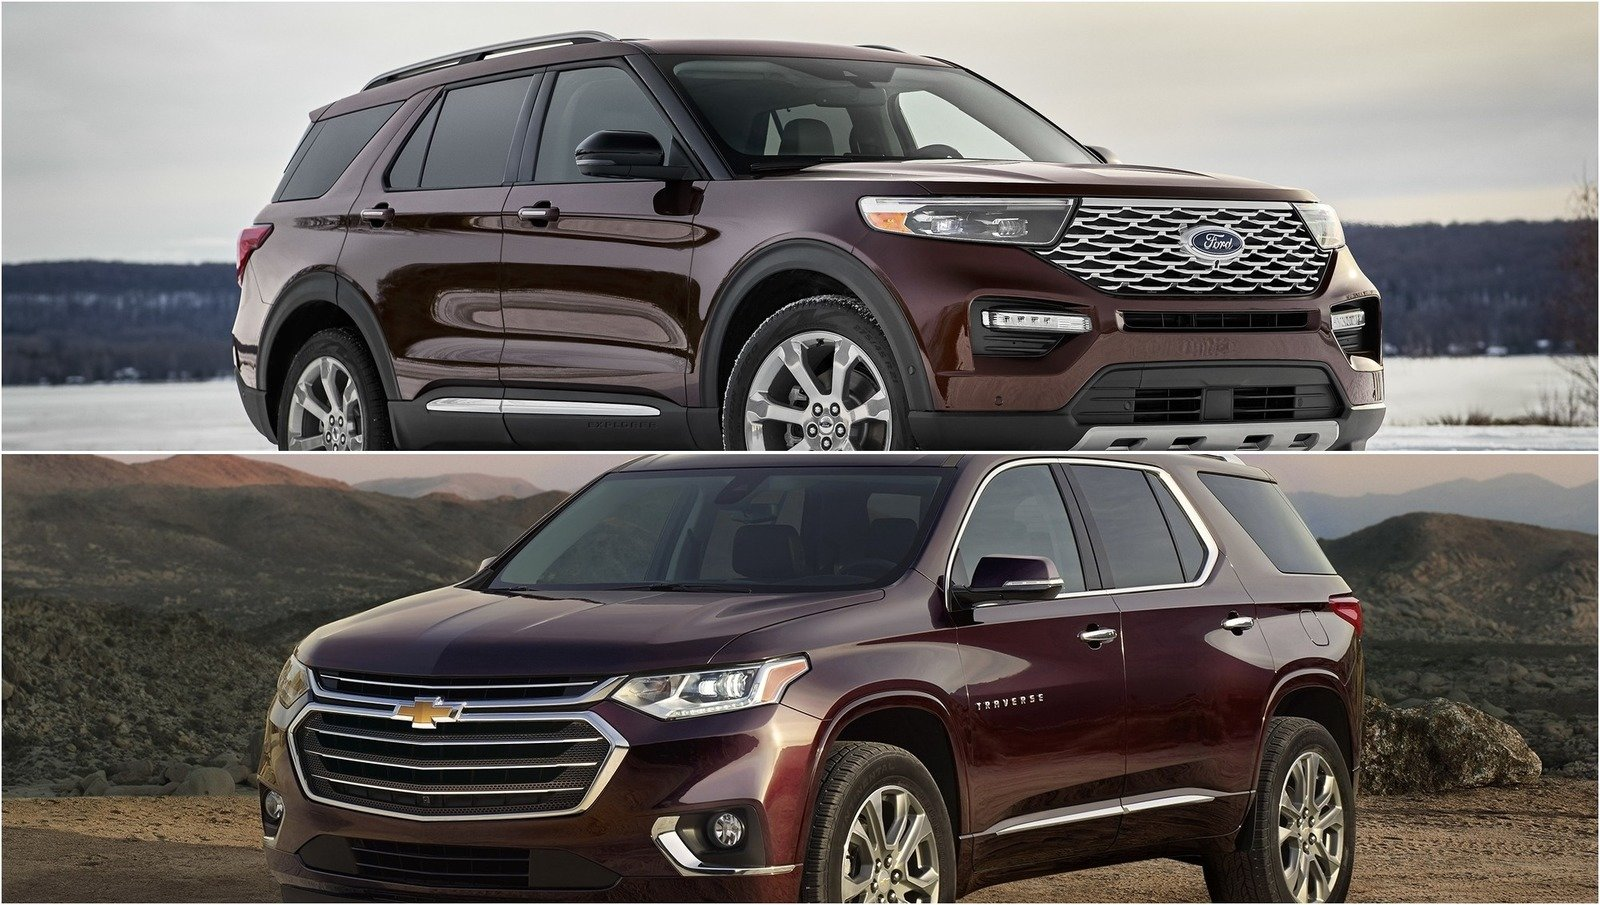 Best Midsize Suv Towing >> 2020 Ford Explorer Vs 2019 Chevy Traverse | Top Speed